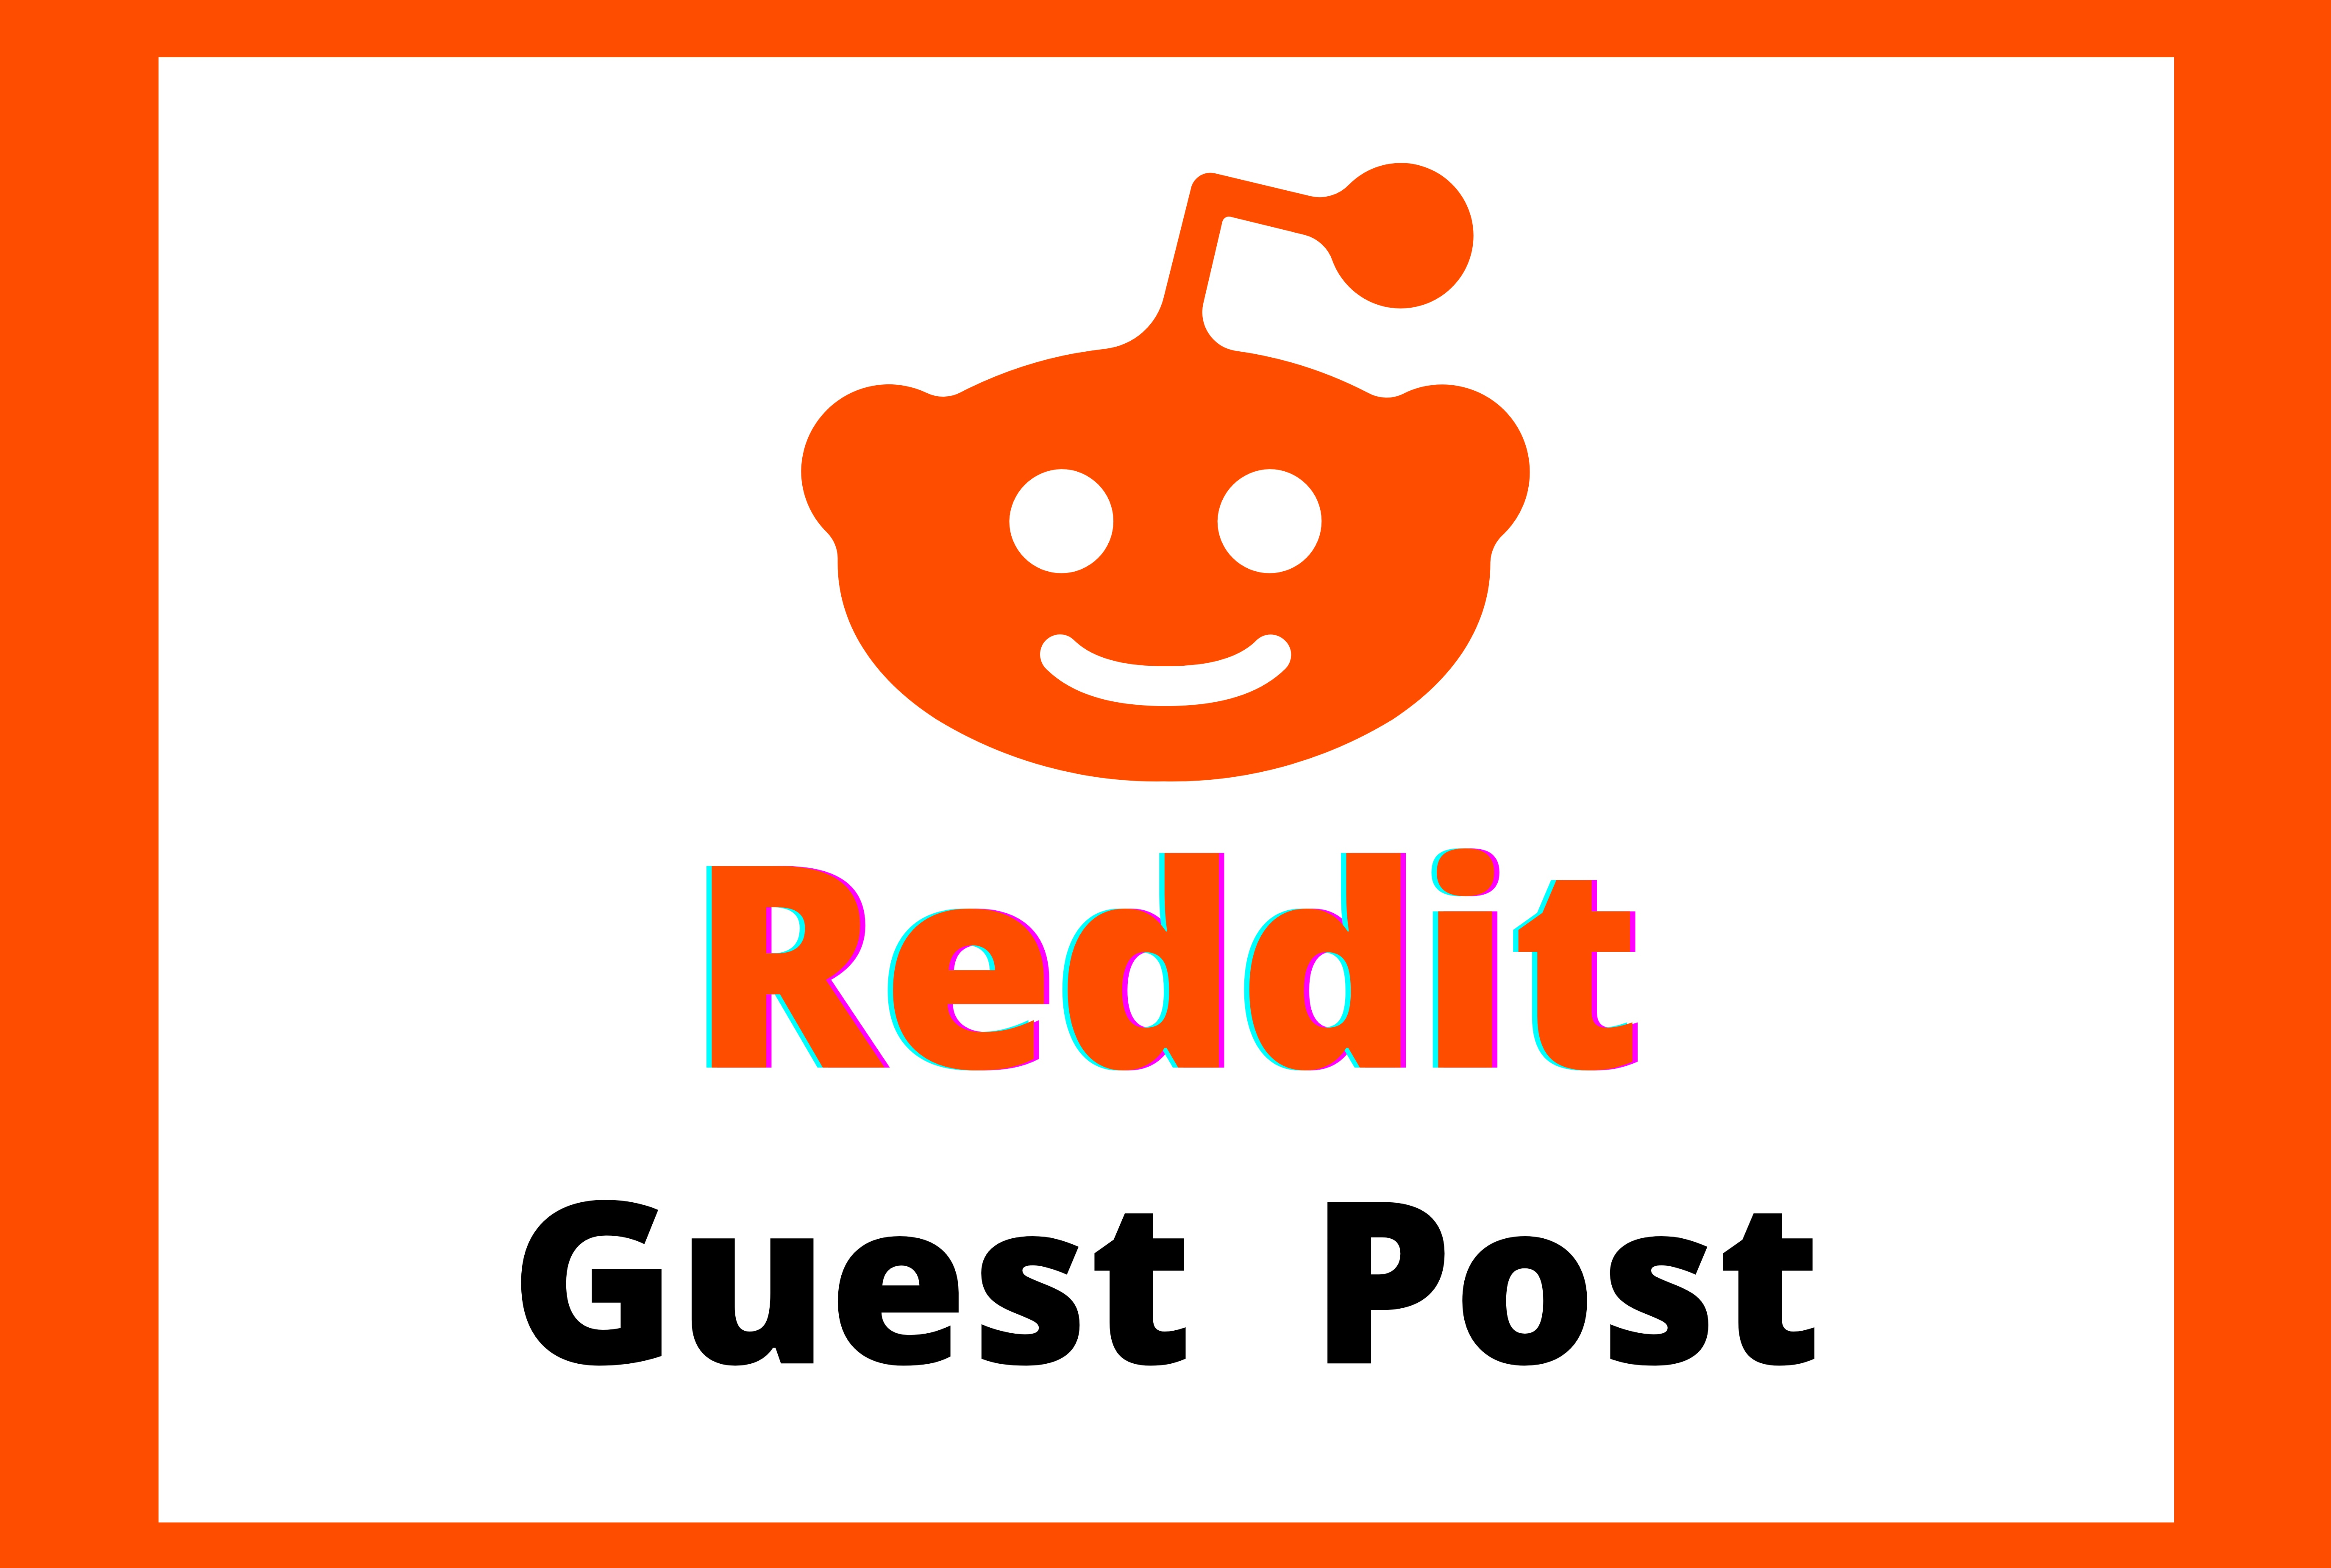 Promote website by 5 High Quality Reddit Guest Post